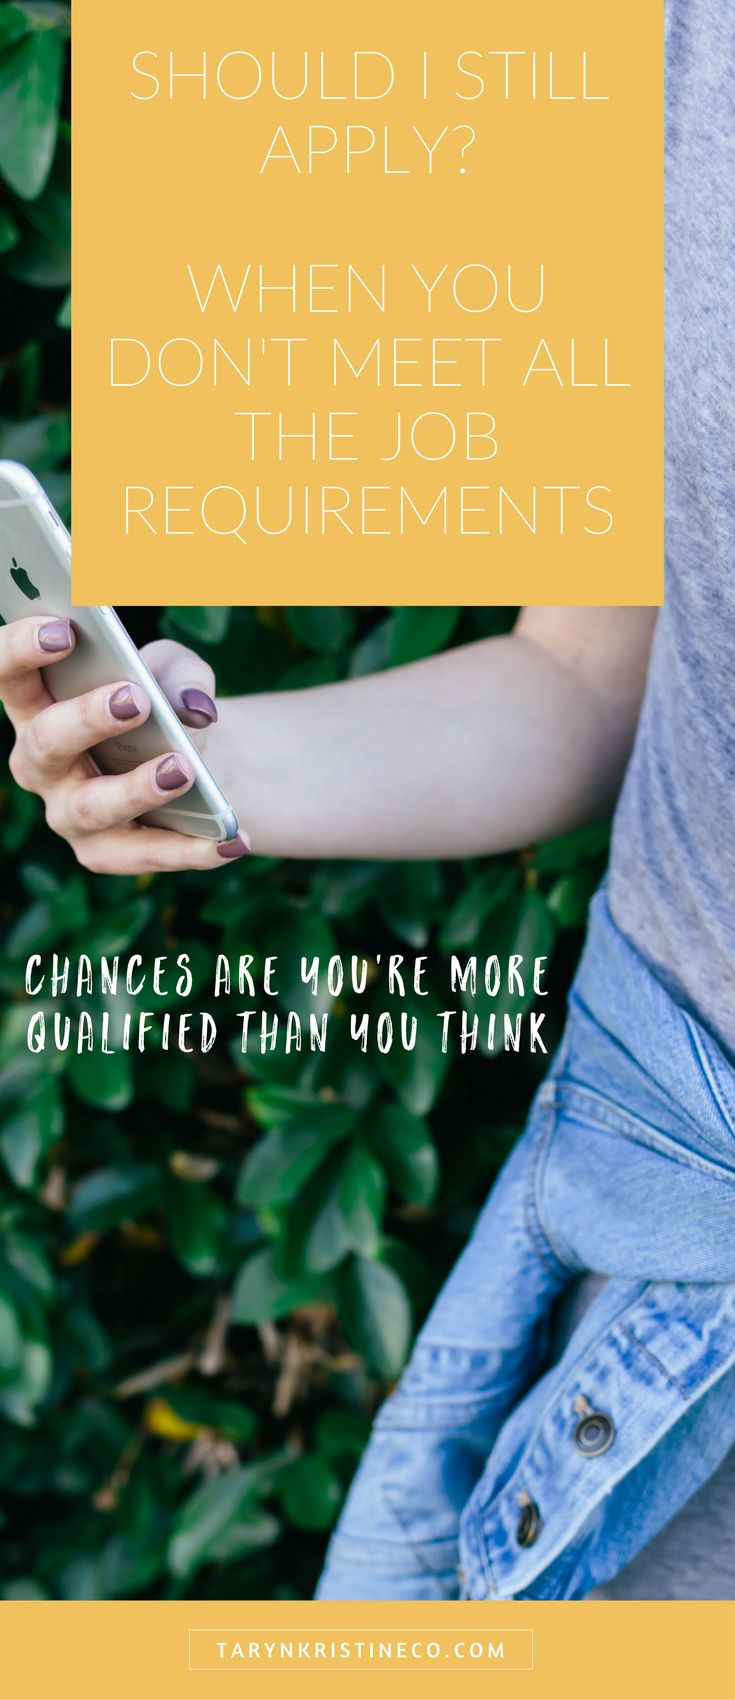 Should you still apply? When you don't meet all the job requirements.  Job Search | Jobs | Cover Letter | Resume | Careers | Job Hunting | Looking for Job | Career Advice | Job Search Tips